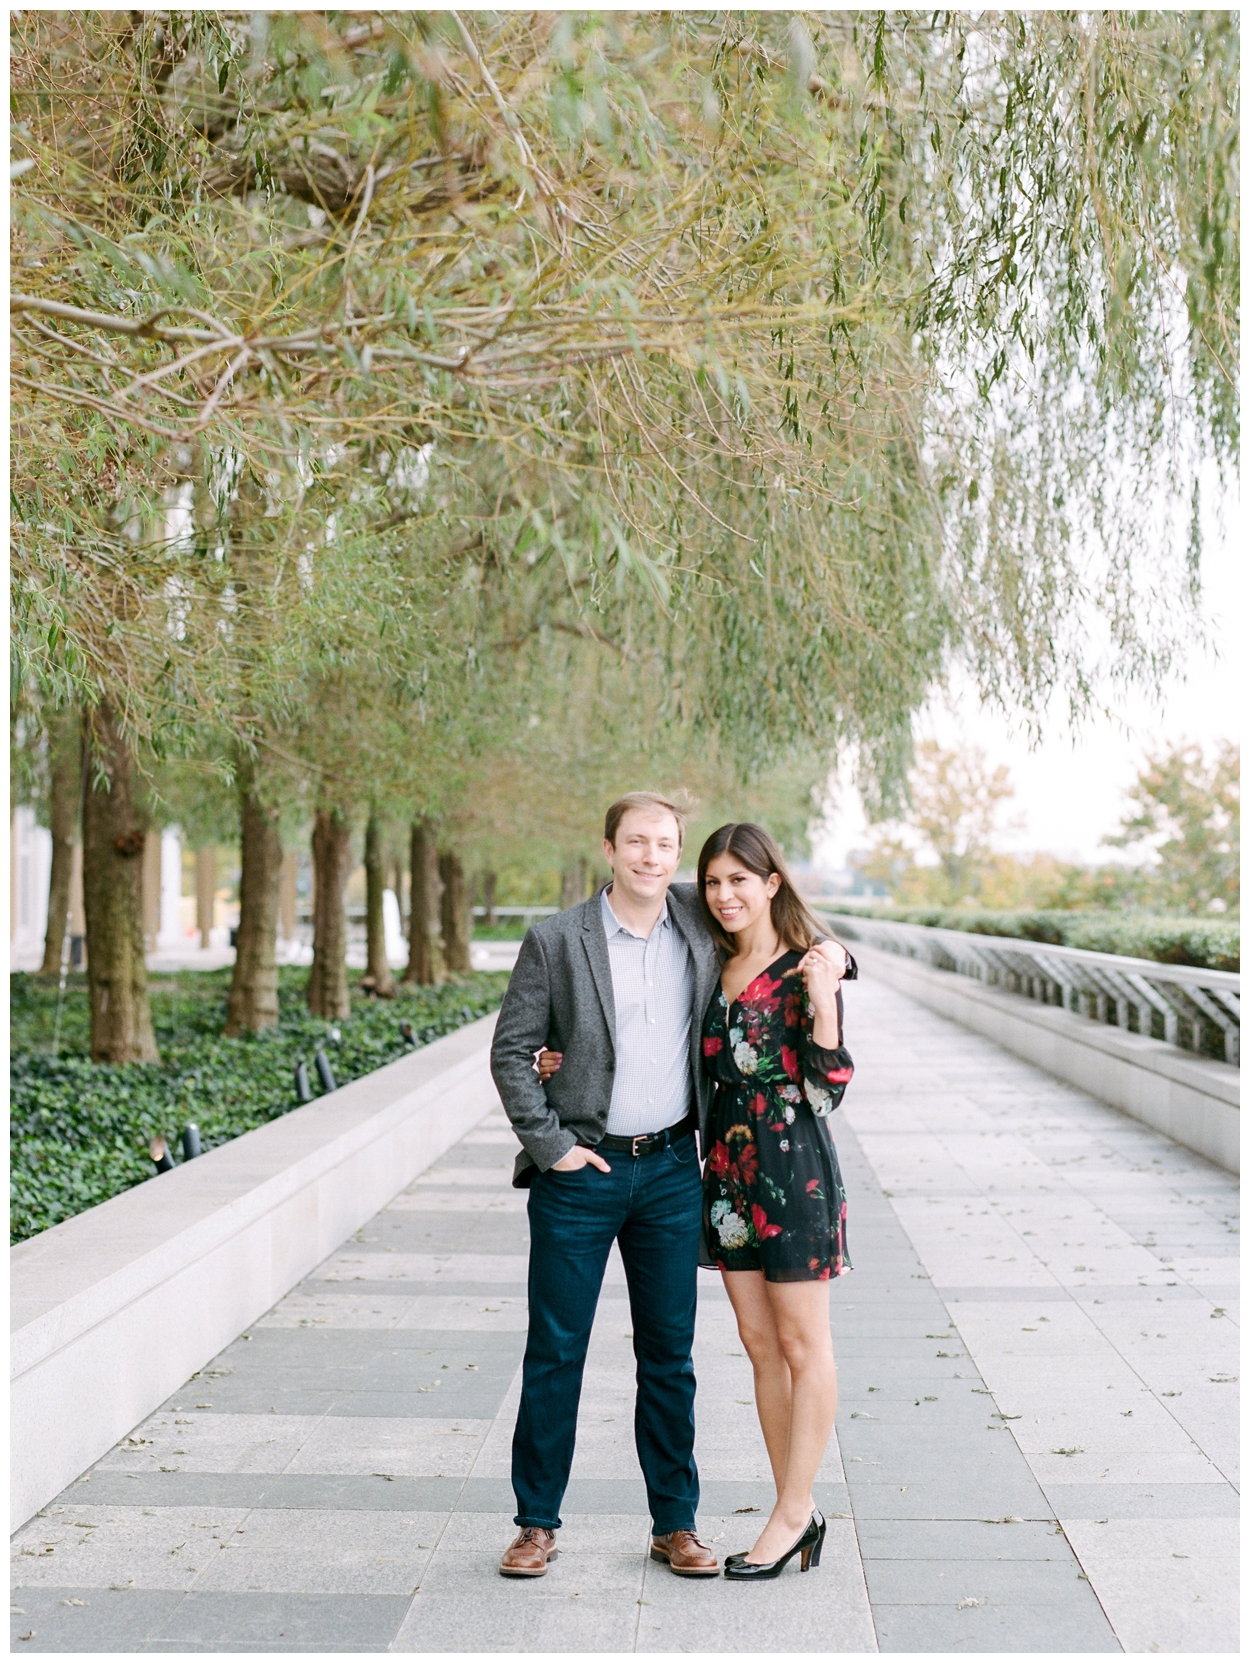 Fall engagement session at the Kennedy Center in Washington DC by fine art wedding photographer Lissa Ryan Photography